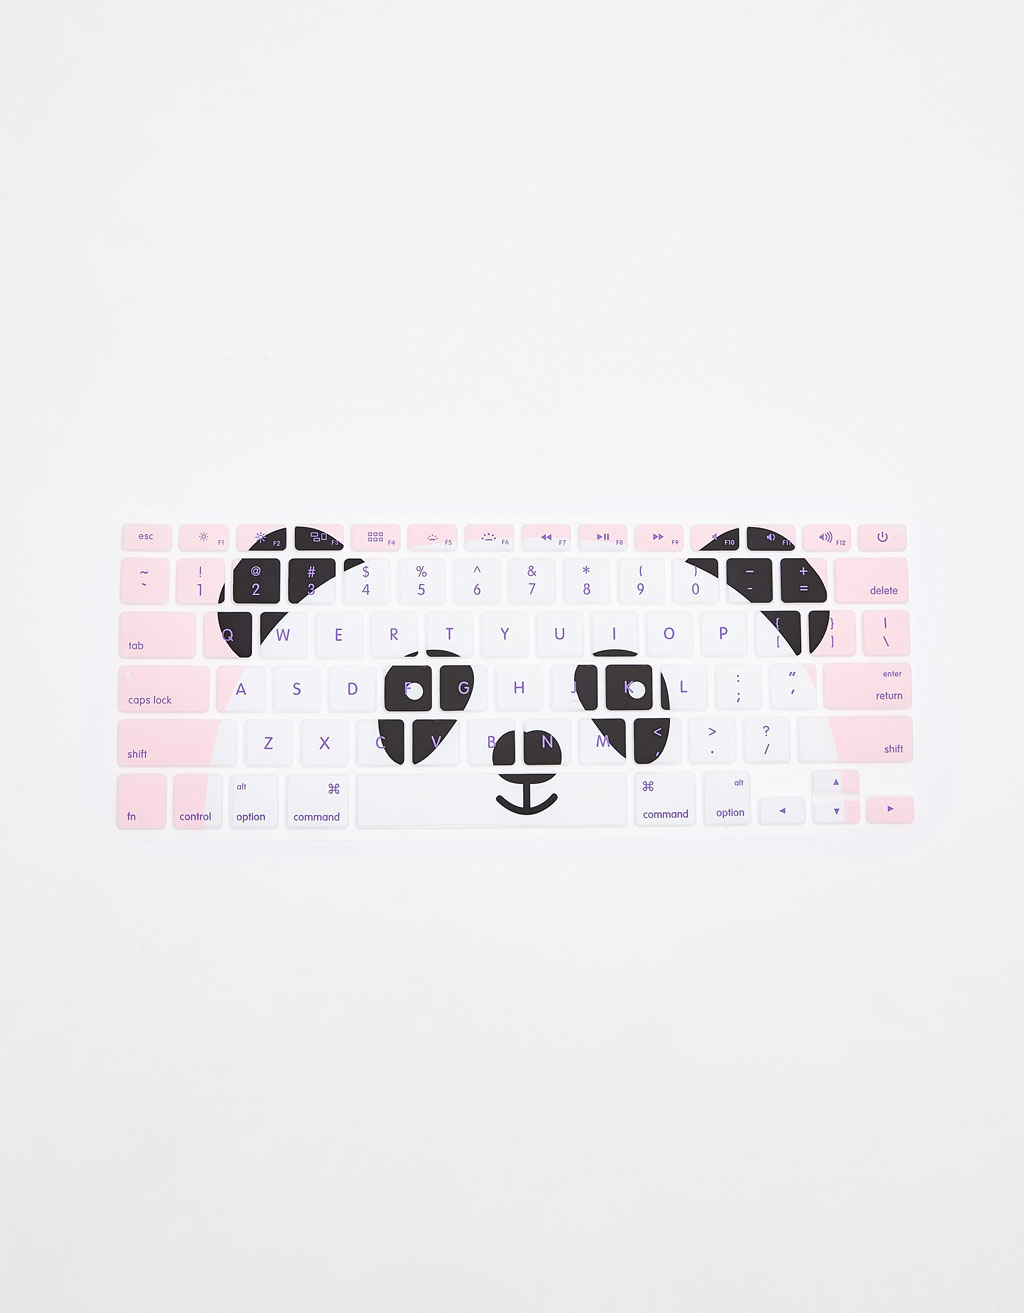 Panda keyboard protector (international keyboard)